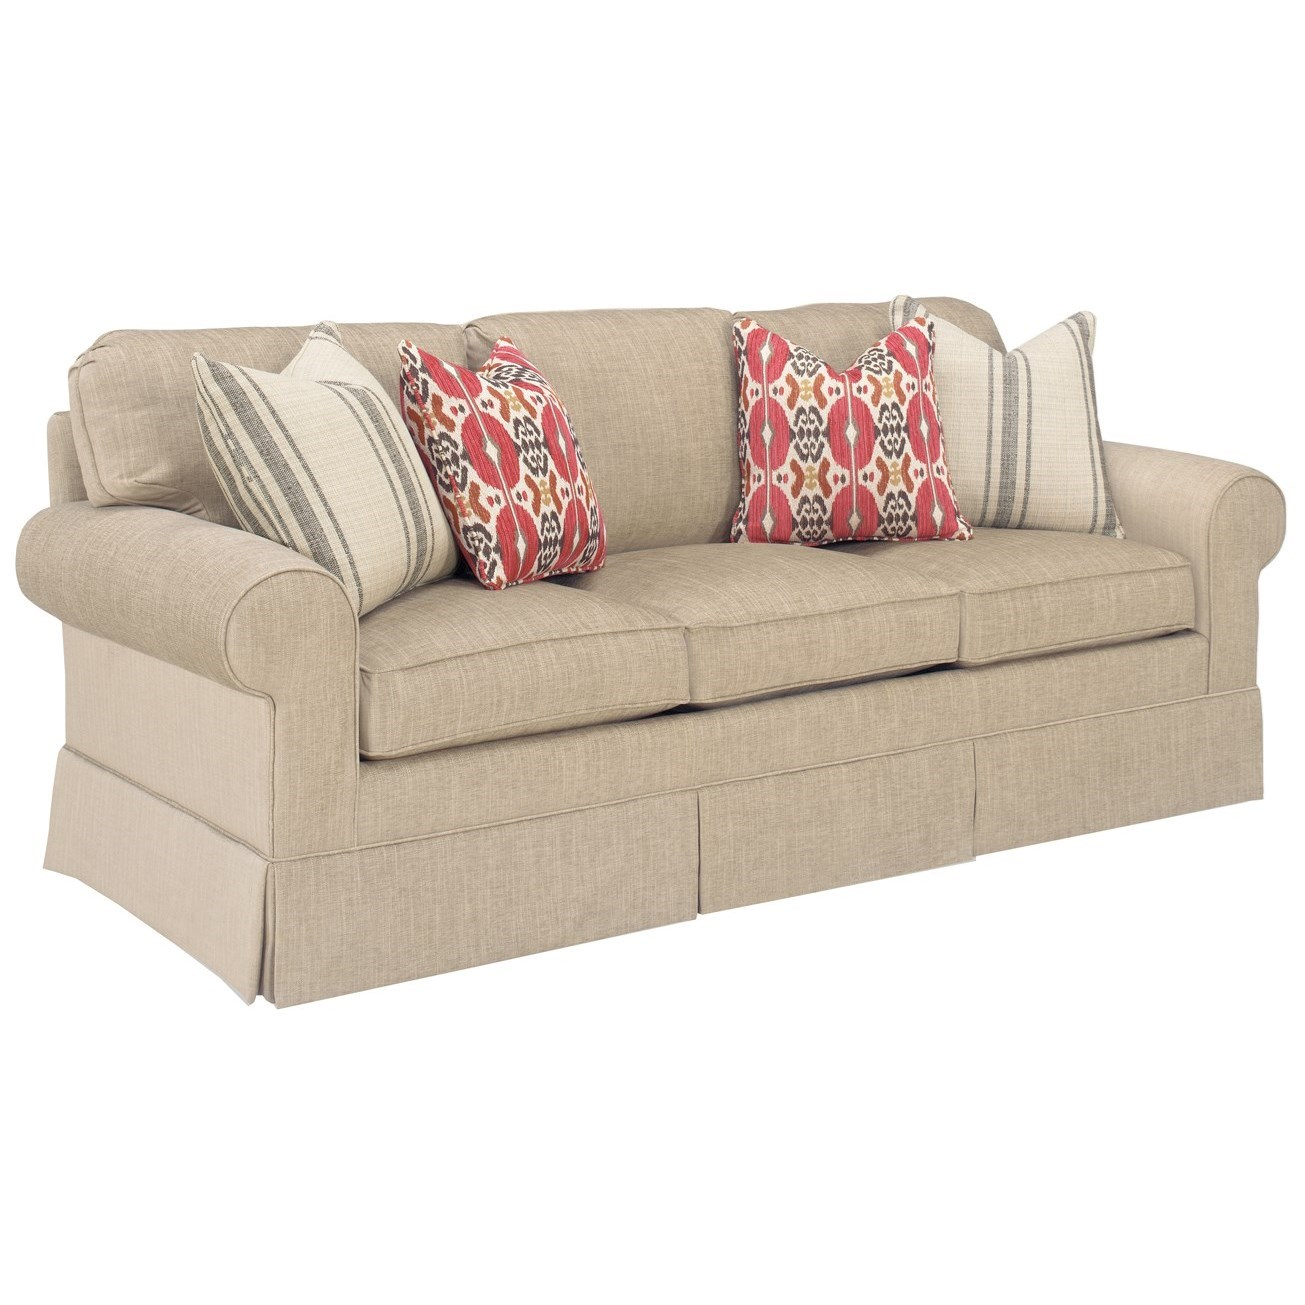 Personal Design Series Bedford Customizable Sleeper Sofa by Lexington at Baer's Furniture